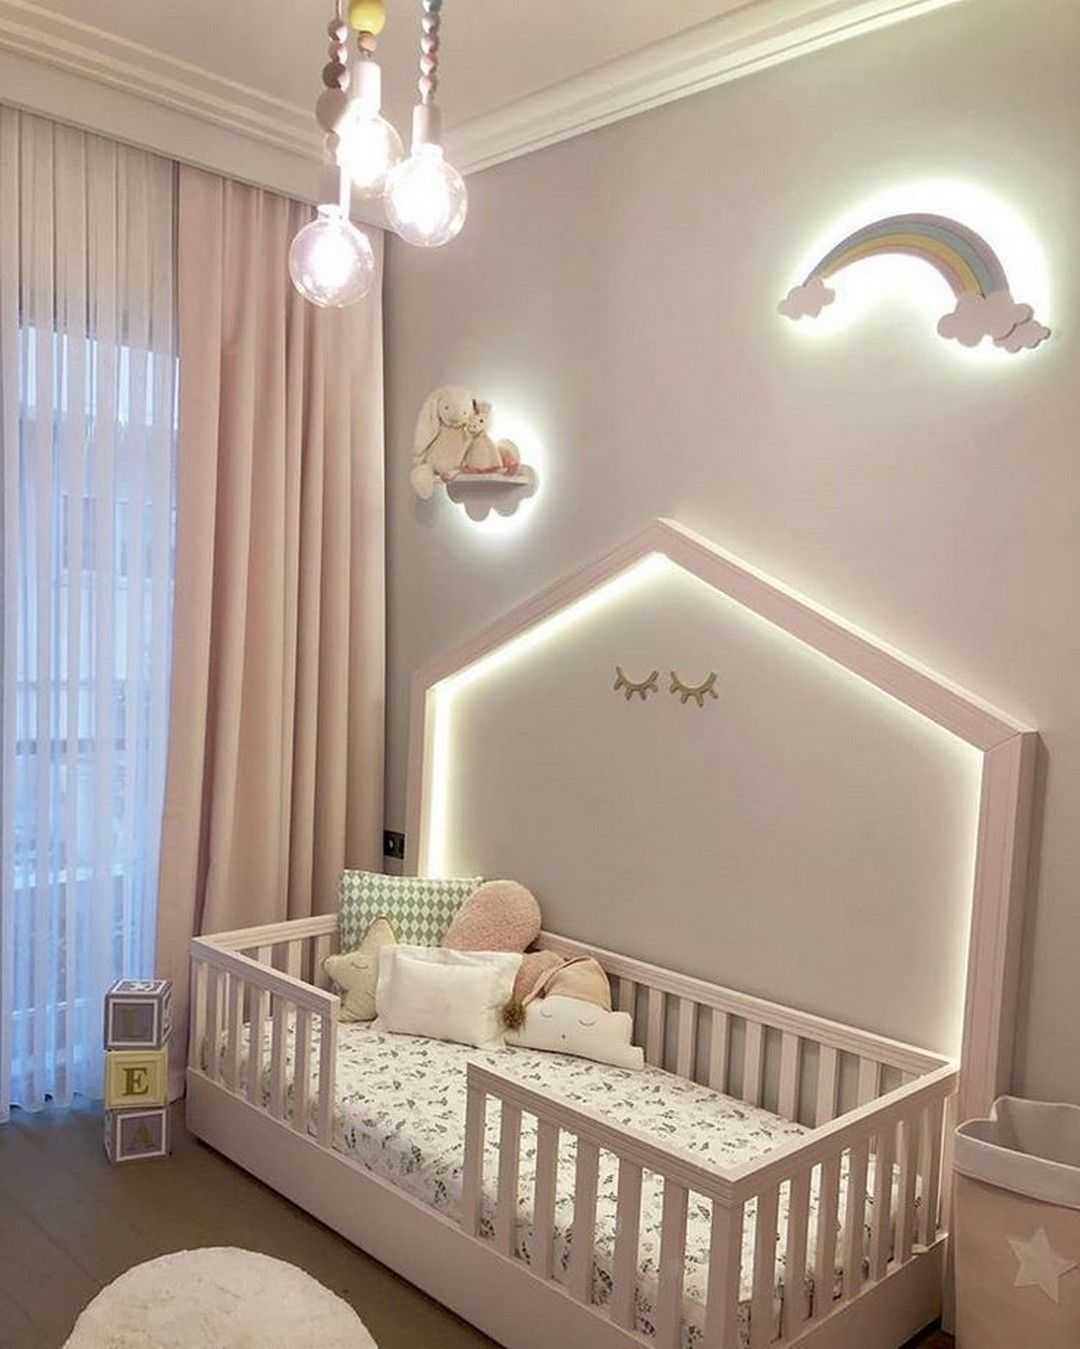 Thanks For Visiting Our Baby Girl Nurseries Image Gallery Where You Can Search a Great Deal Of Nurseries Layout Ideas